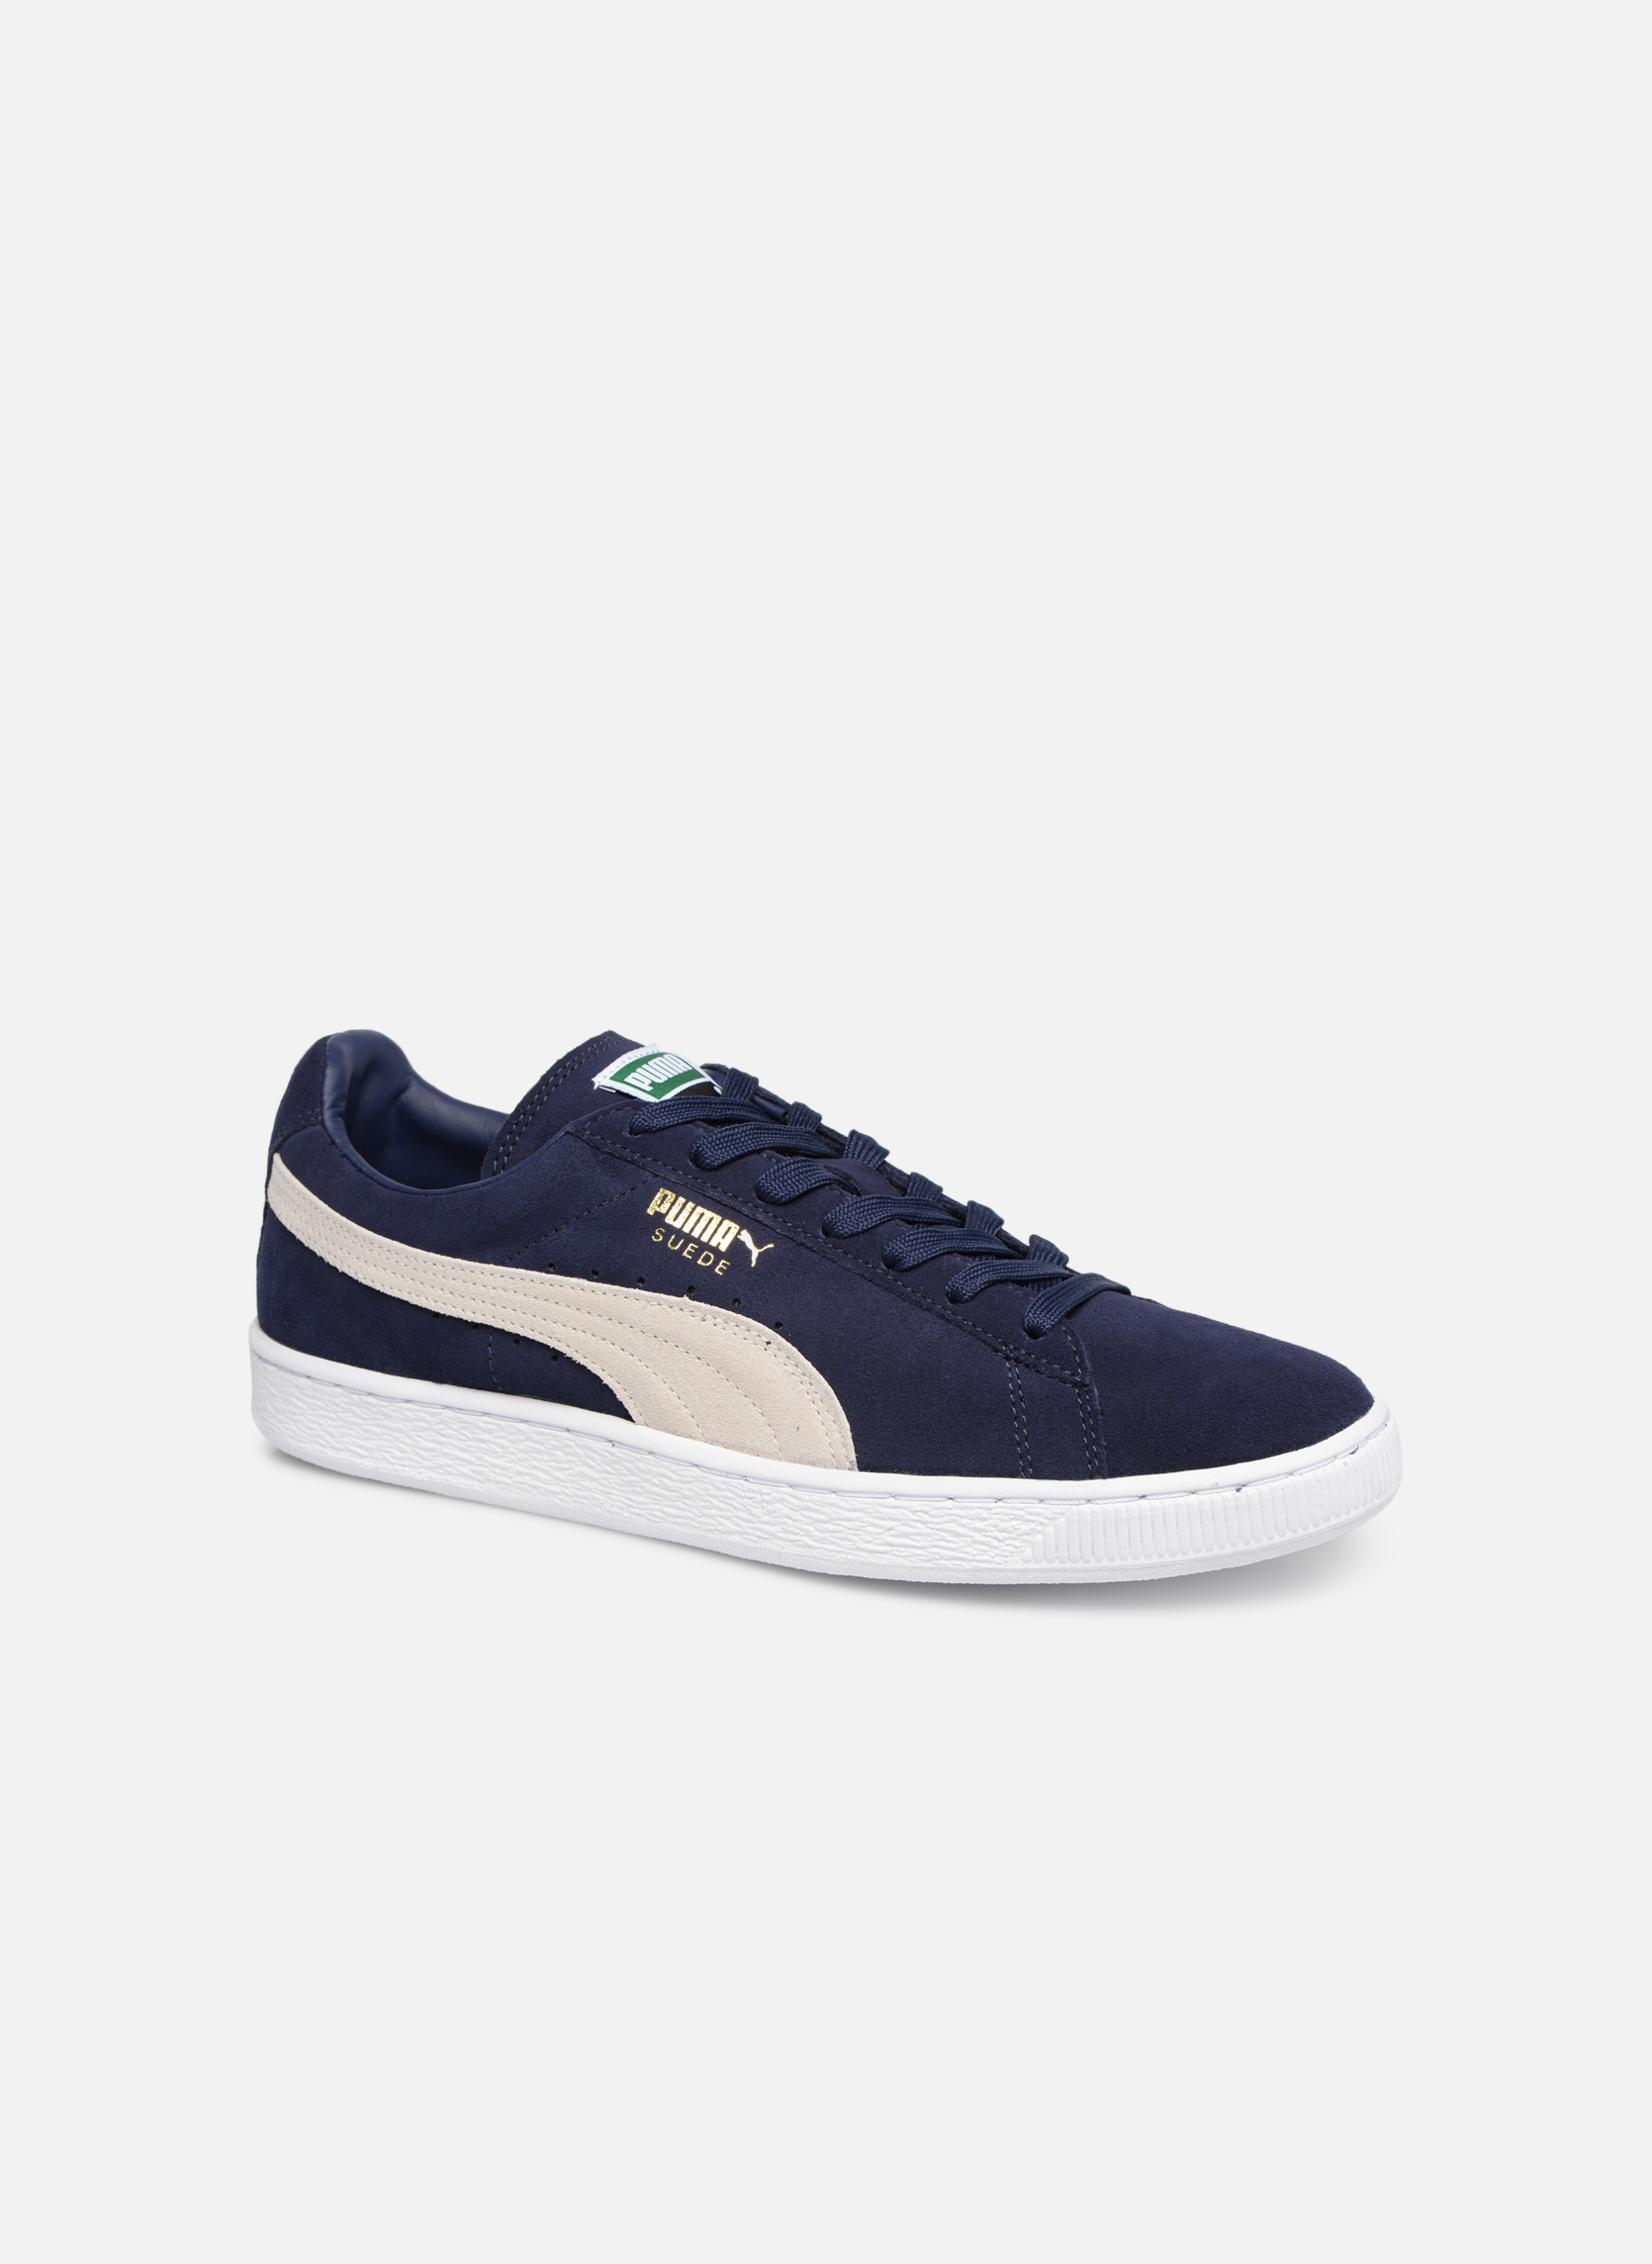 Suede classic eco by PumaRebajas - 20%